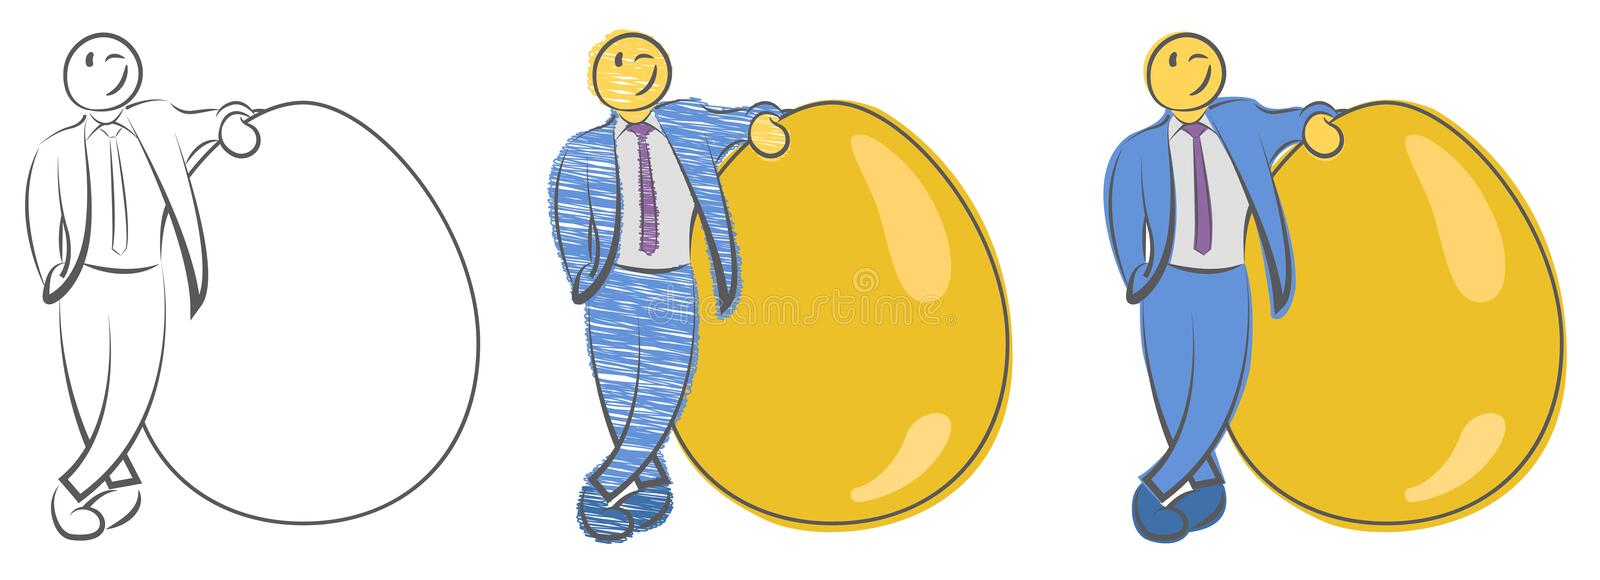 Businessman is standing near large golden egg. Concept for wealth. Natural born leader. Startups and new businesses. Investment an stock illustration